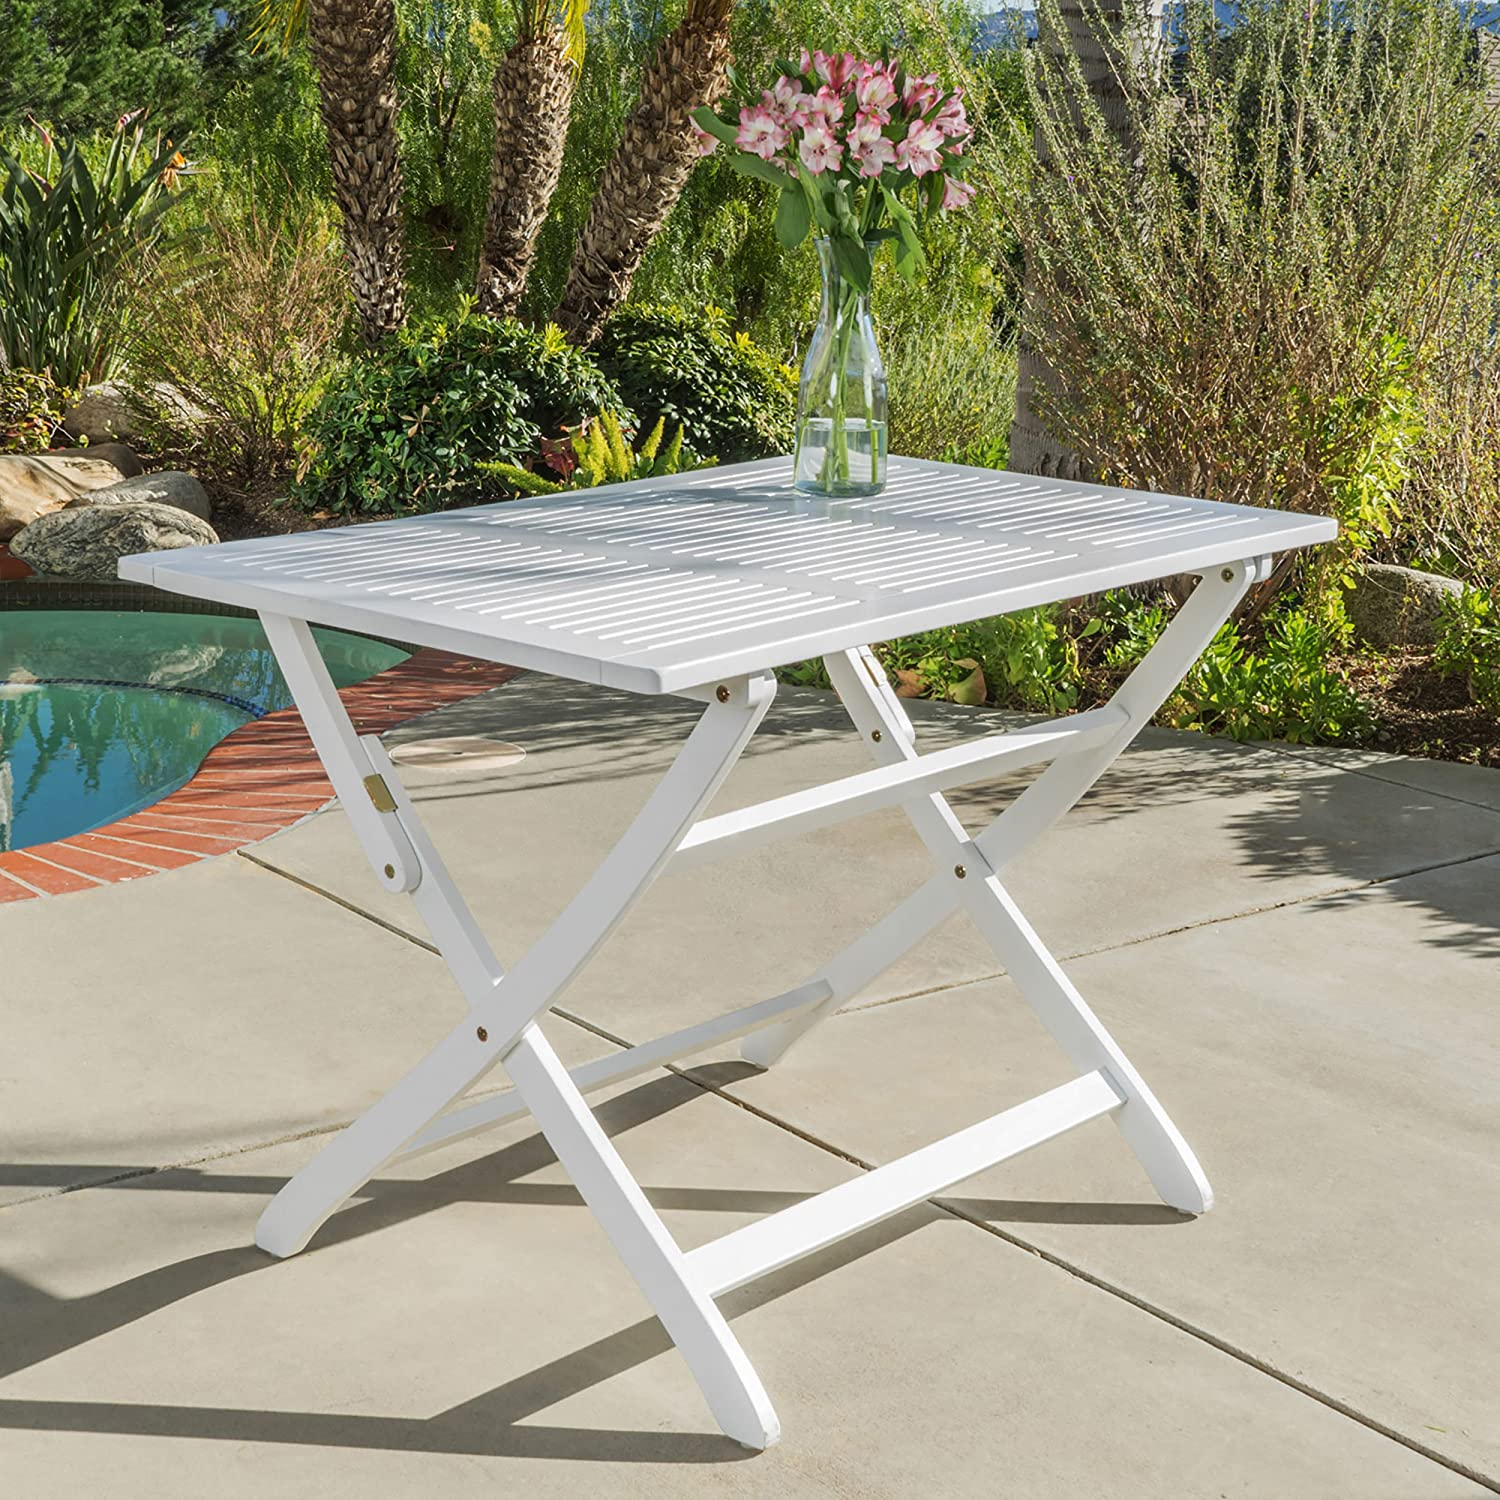 St. Nevis Acacia Wood Outdoor Foldable Dining Table Perfect for Patio with White Finish